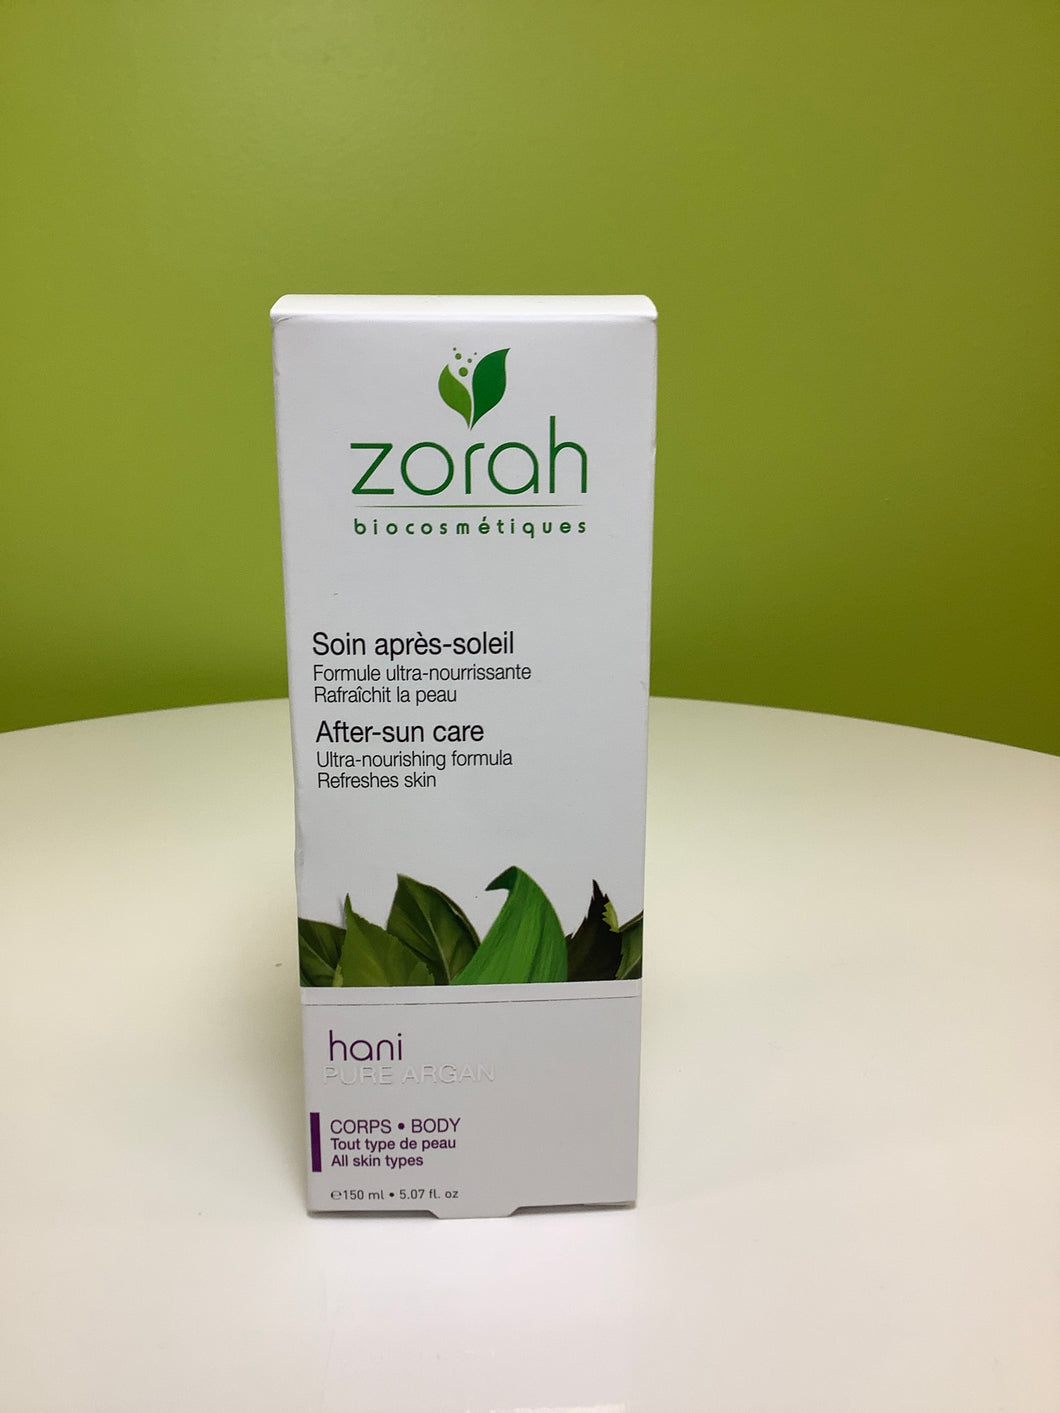 Zorah Biocosmetiques Hani After Sun Care